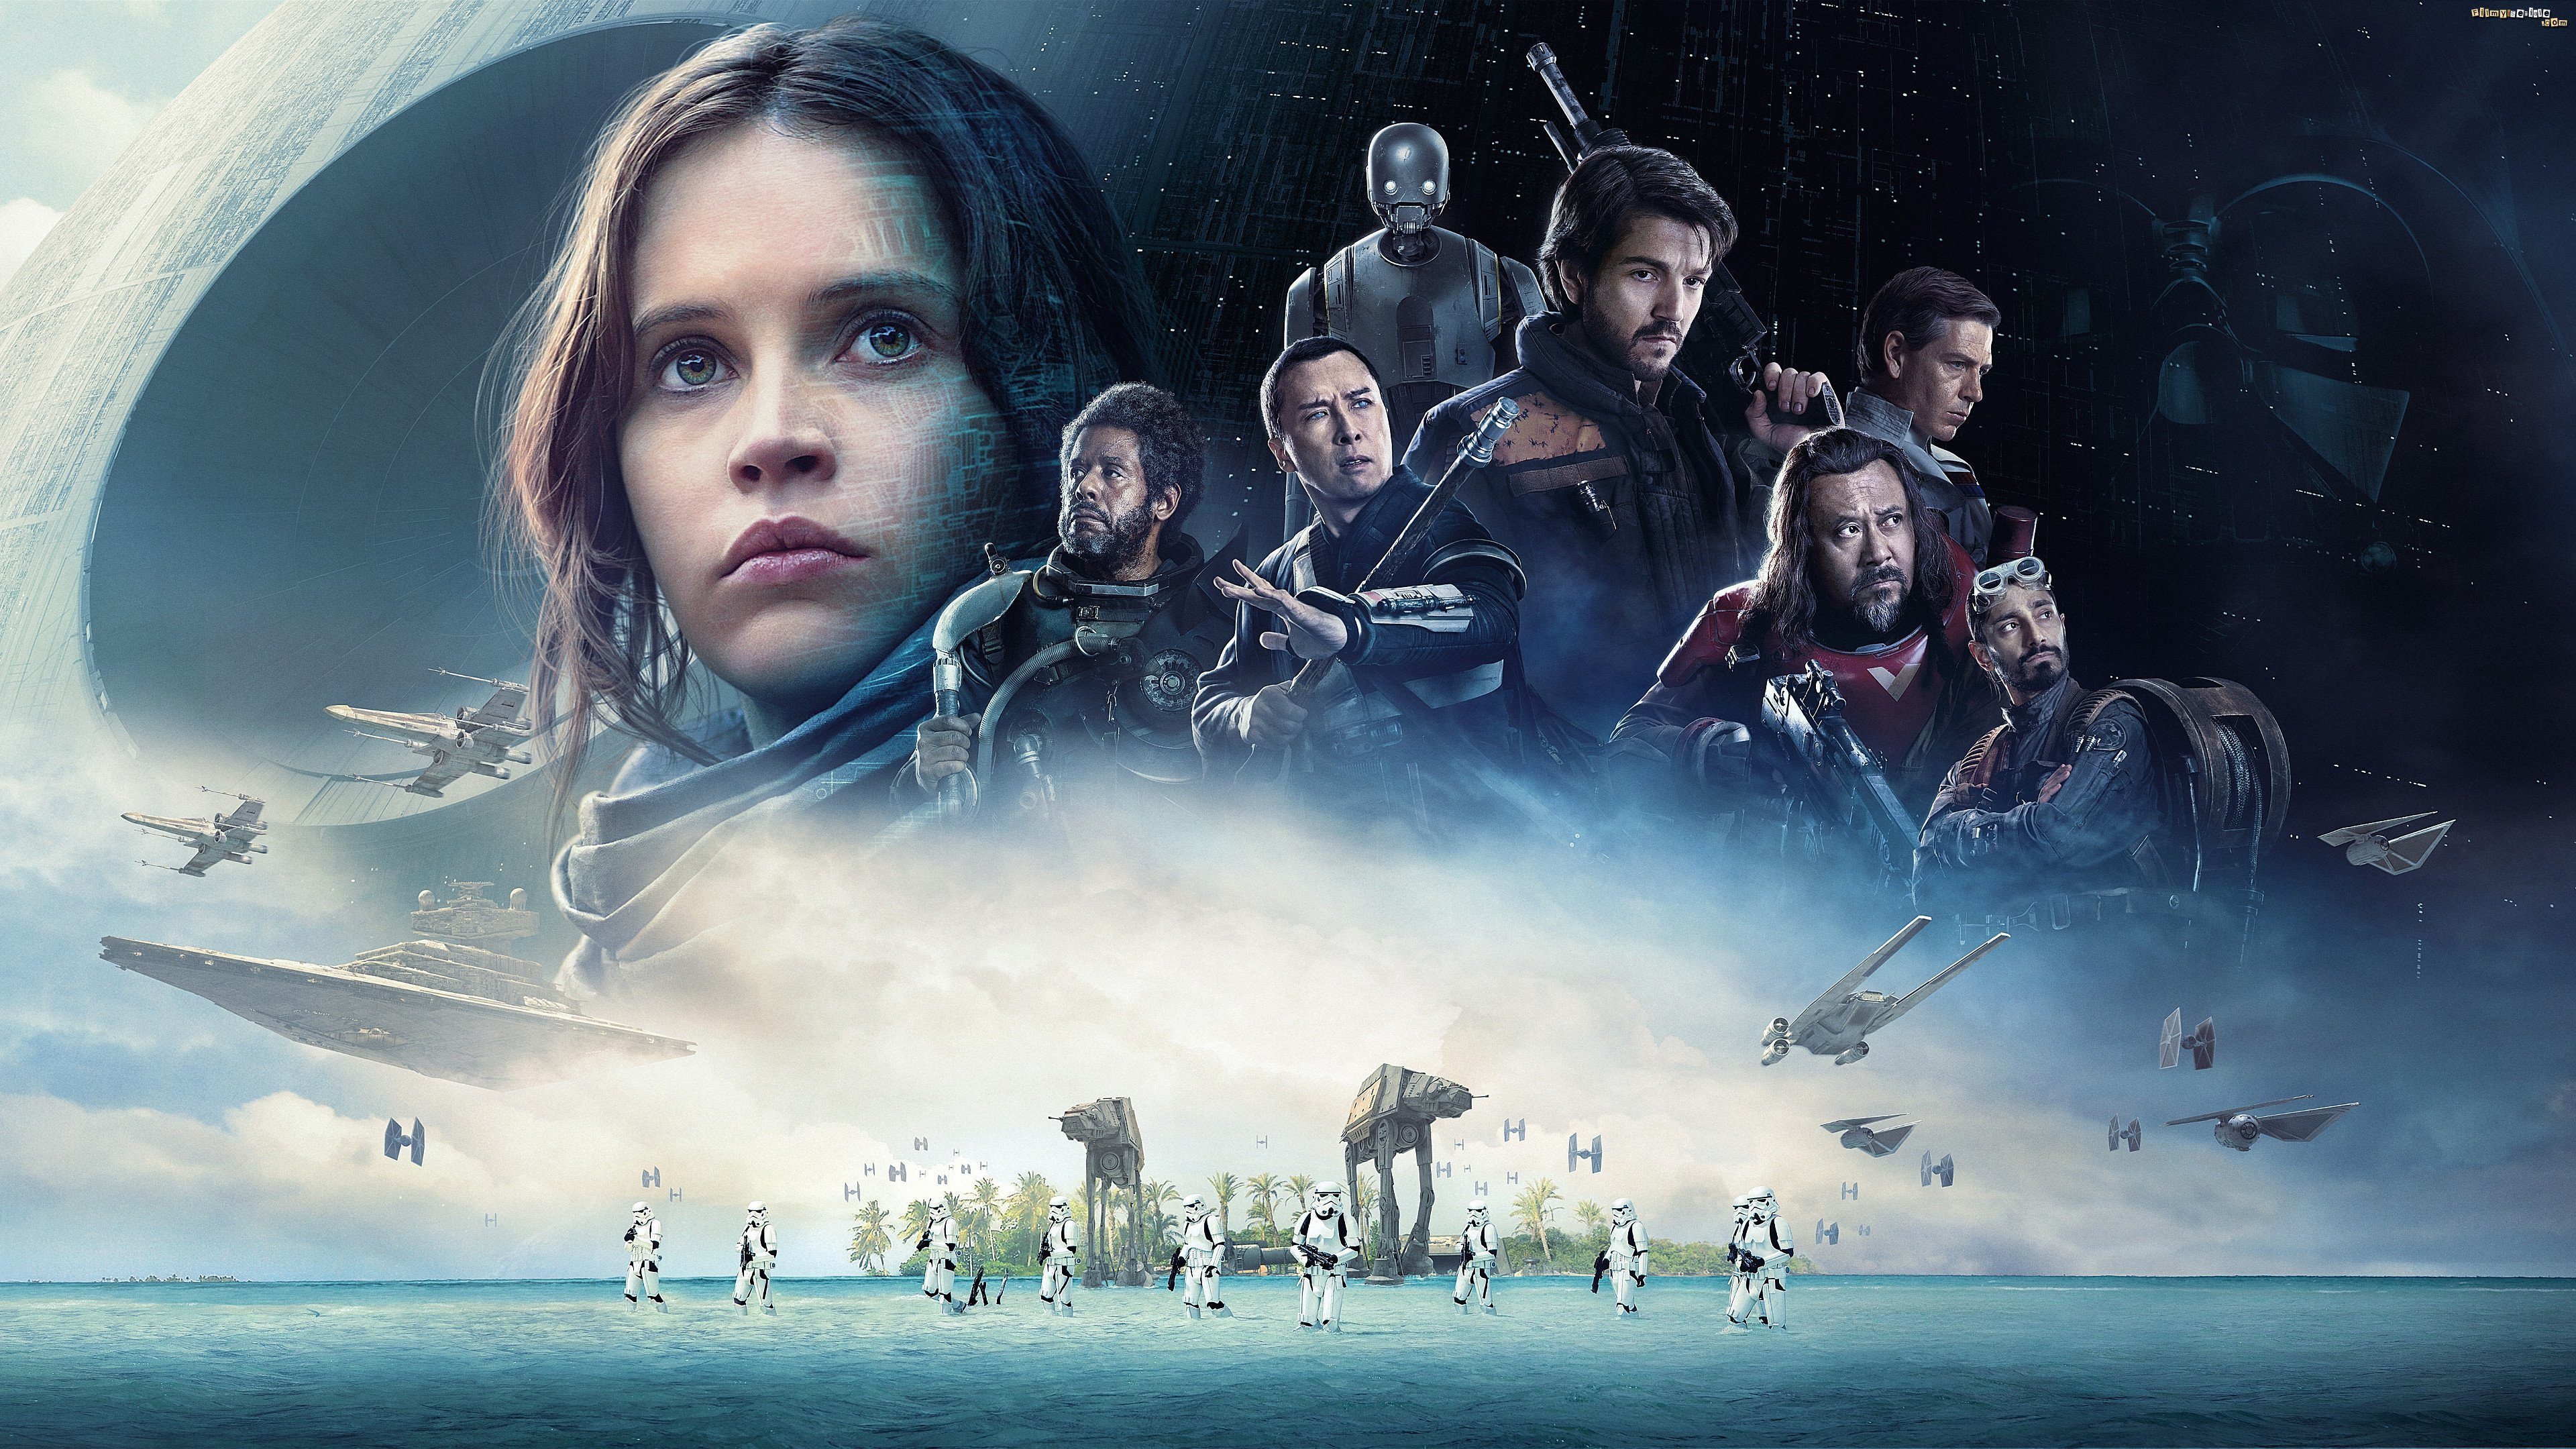 Film, Łotr 1. Gwiezdne wojny – historie, Rogue One: A Star Wars Story, Plakat